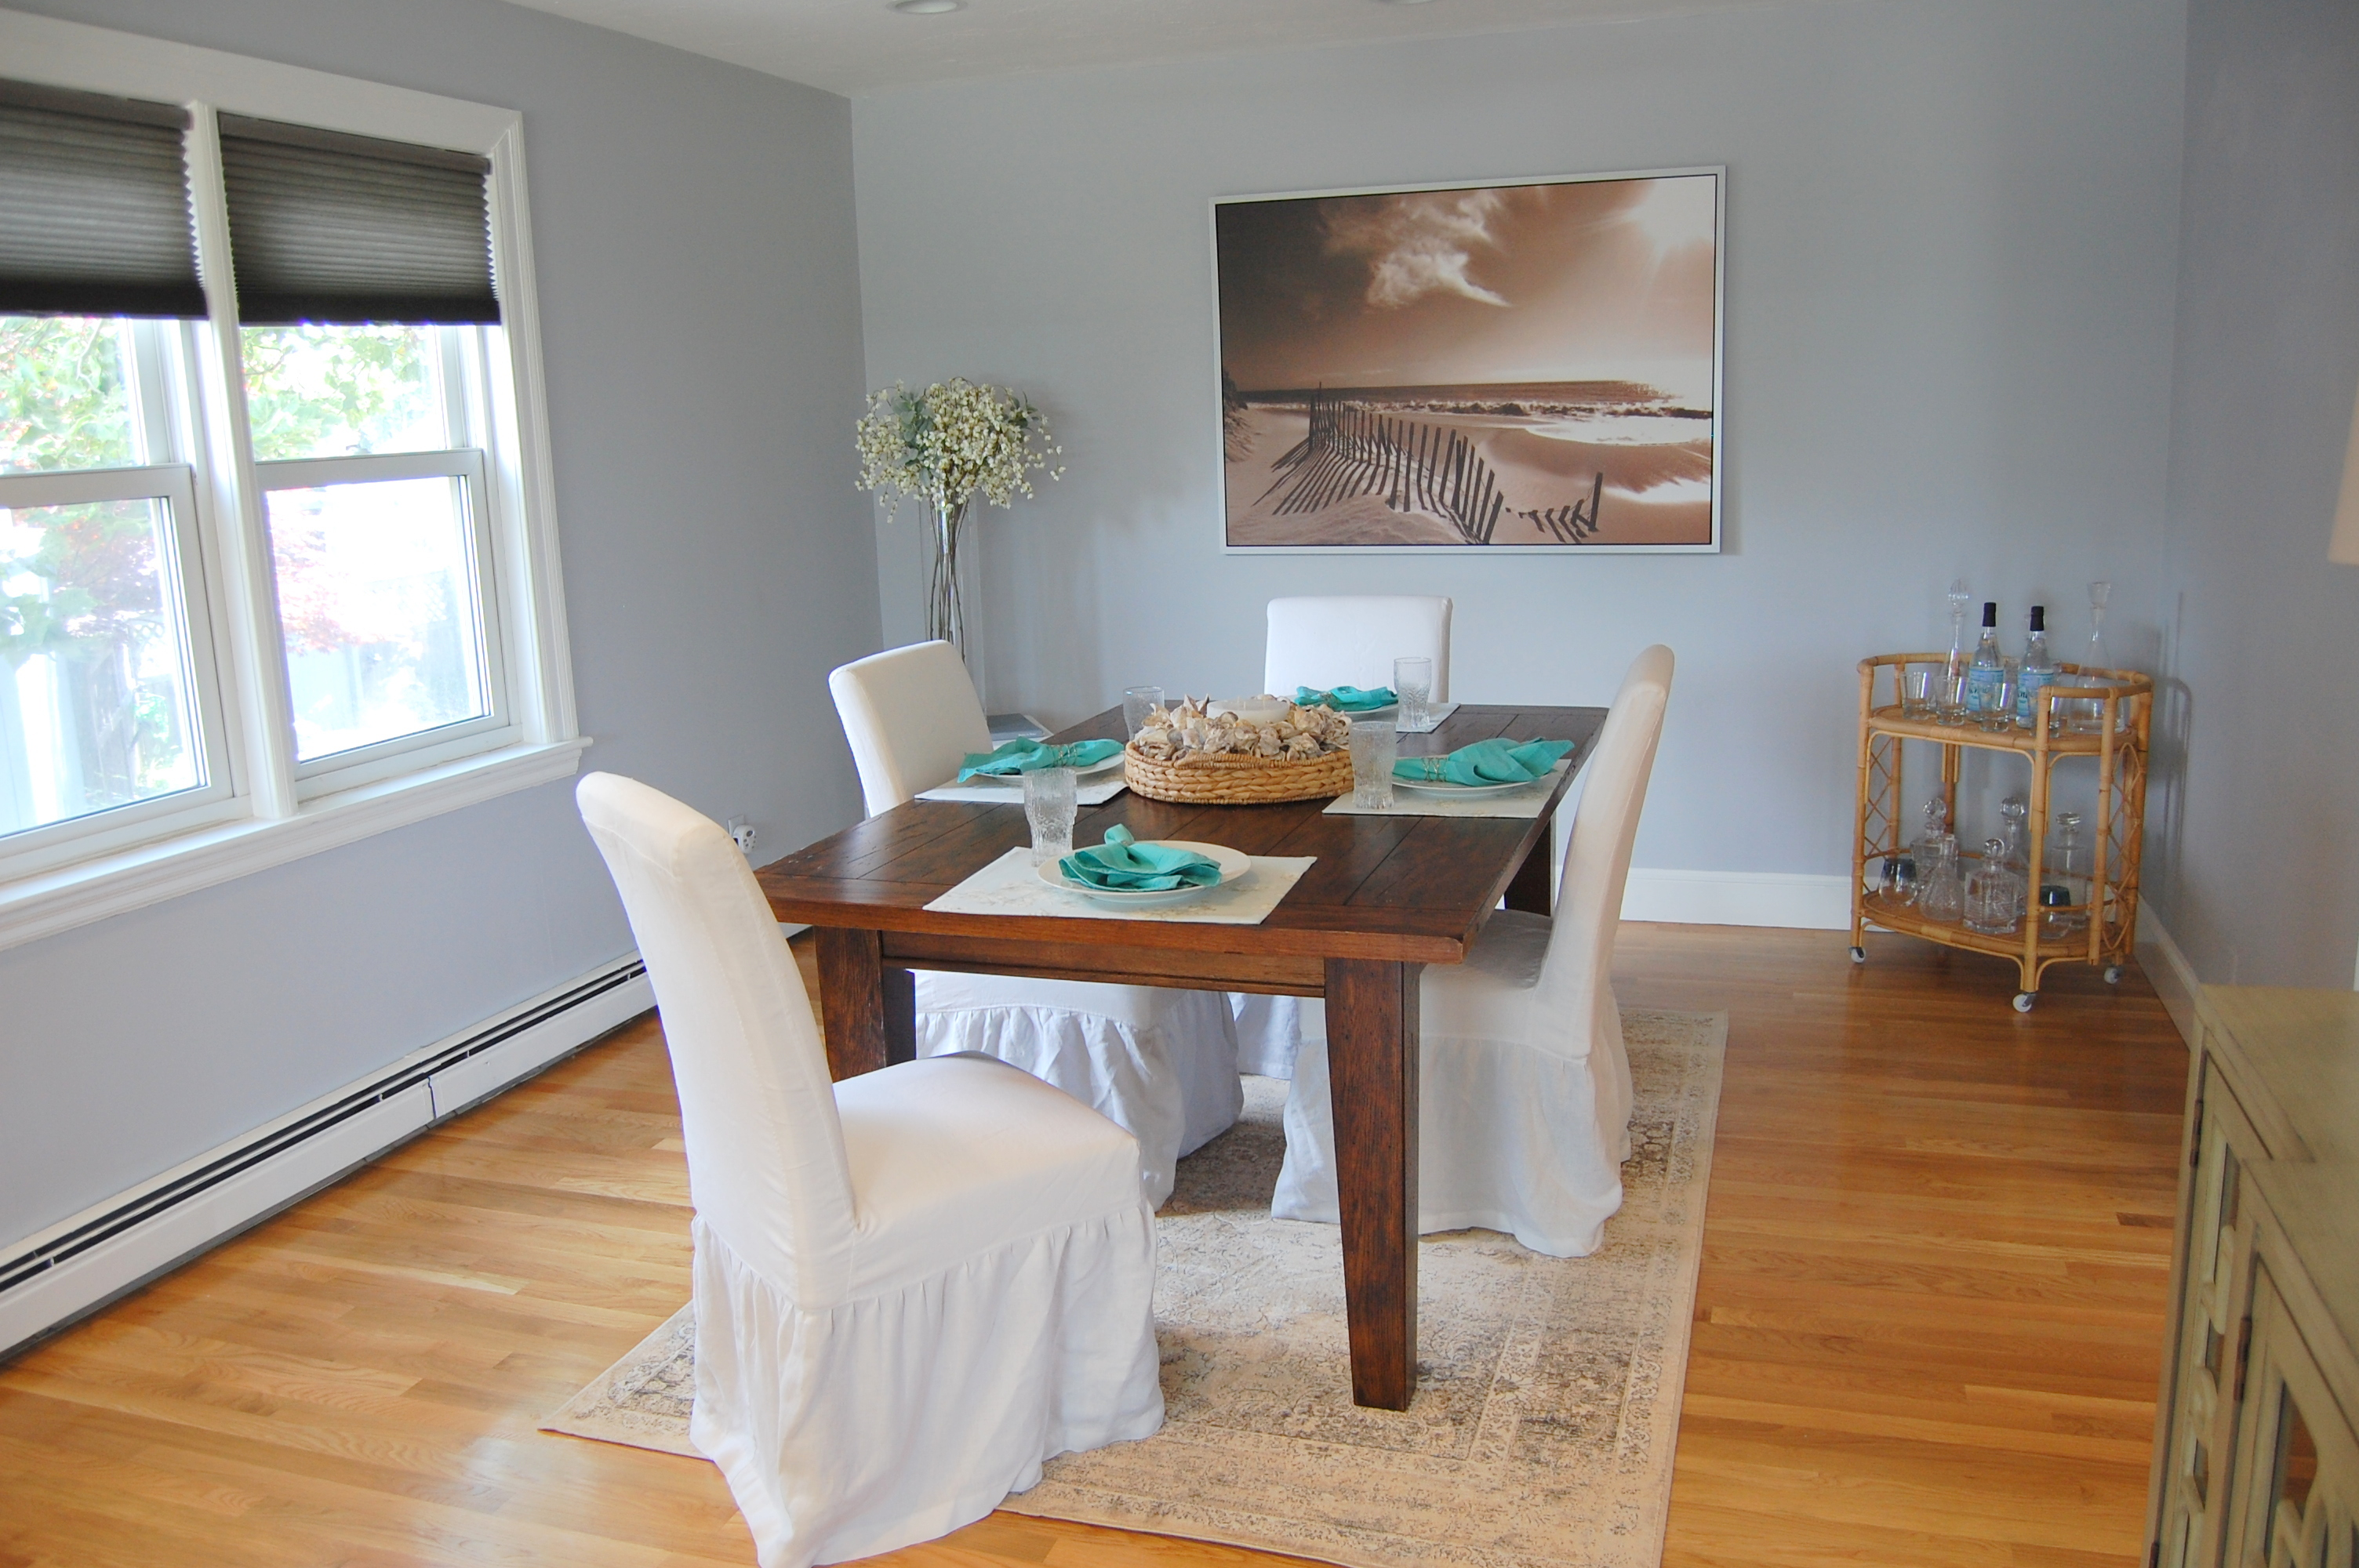 Staging your home helps it to sell faster